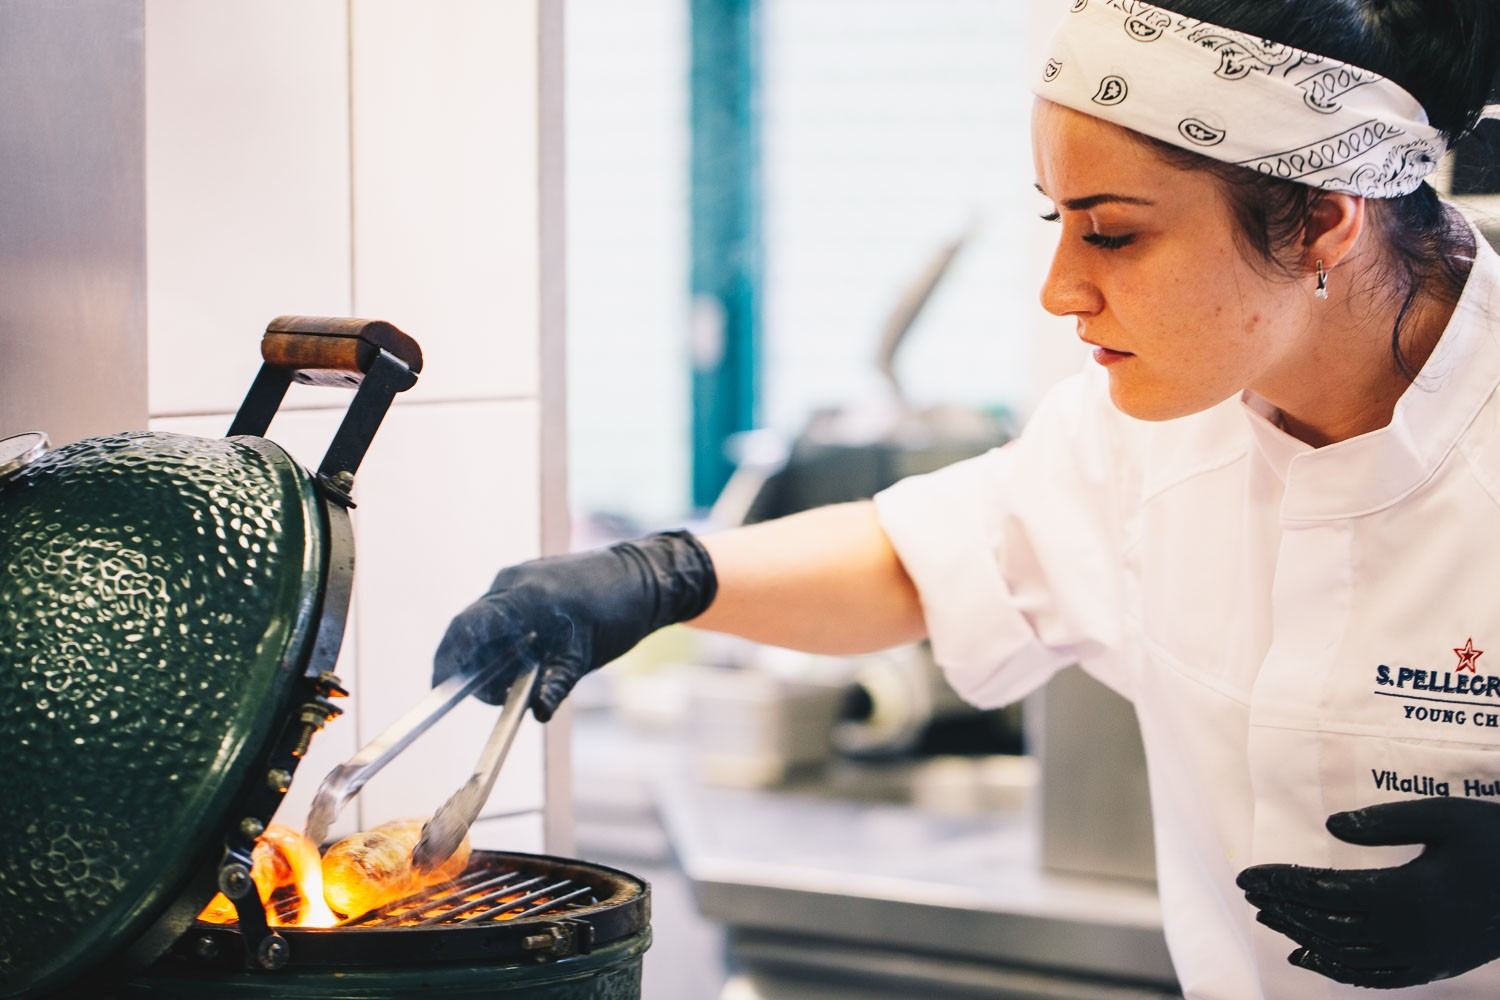 S.Pellegrino Young Chef 2019